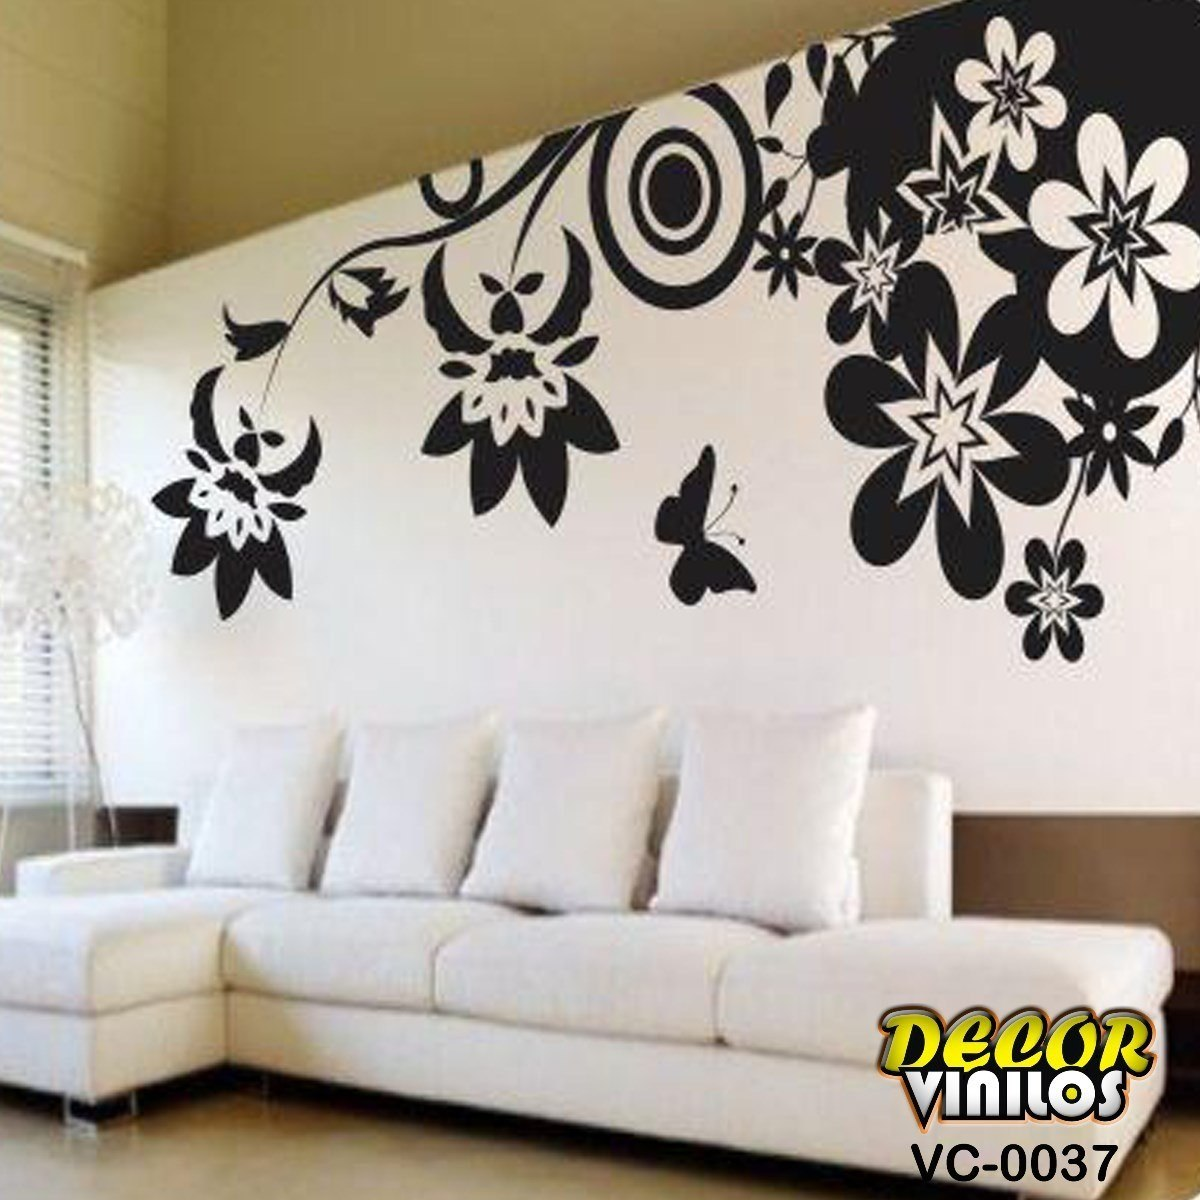 Vinilos decorativos pared vinilos pared vinilos para for Vinilos decorativos para pared